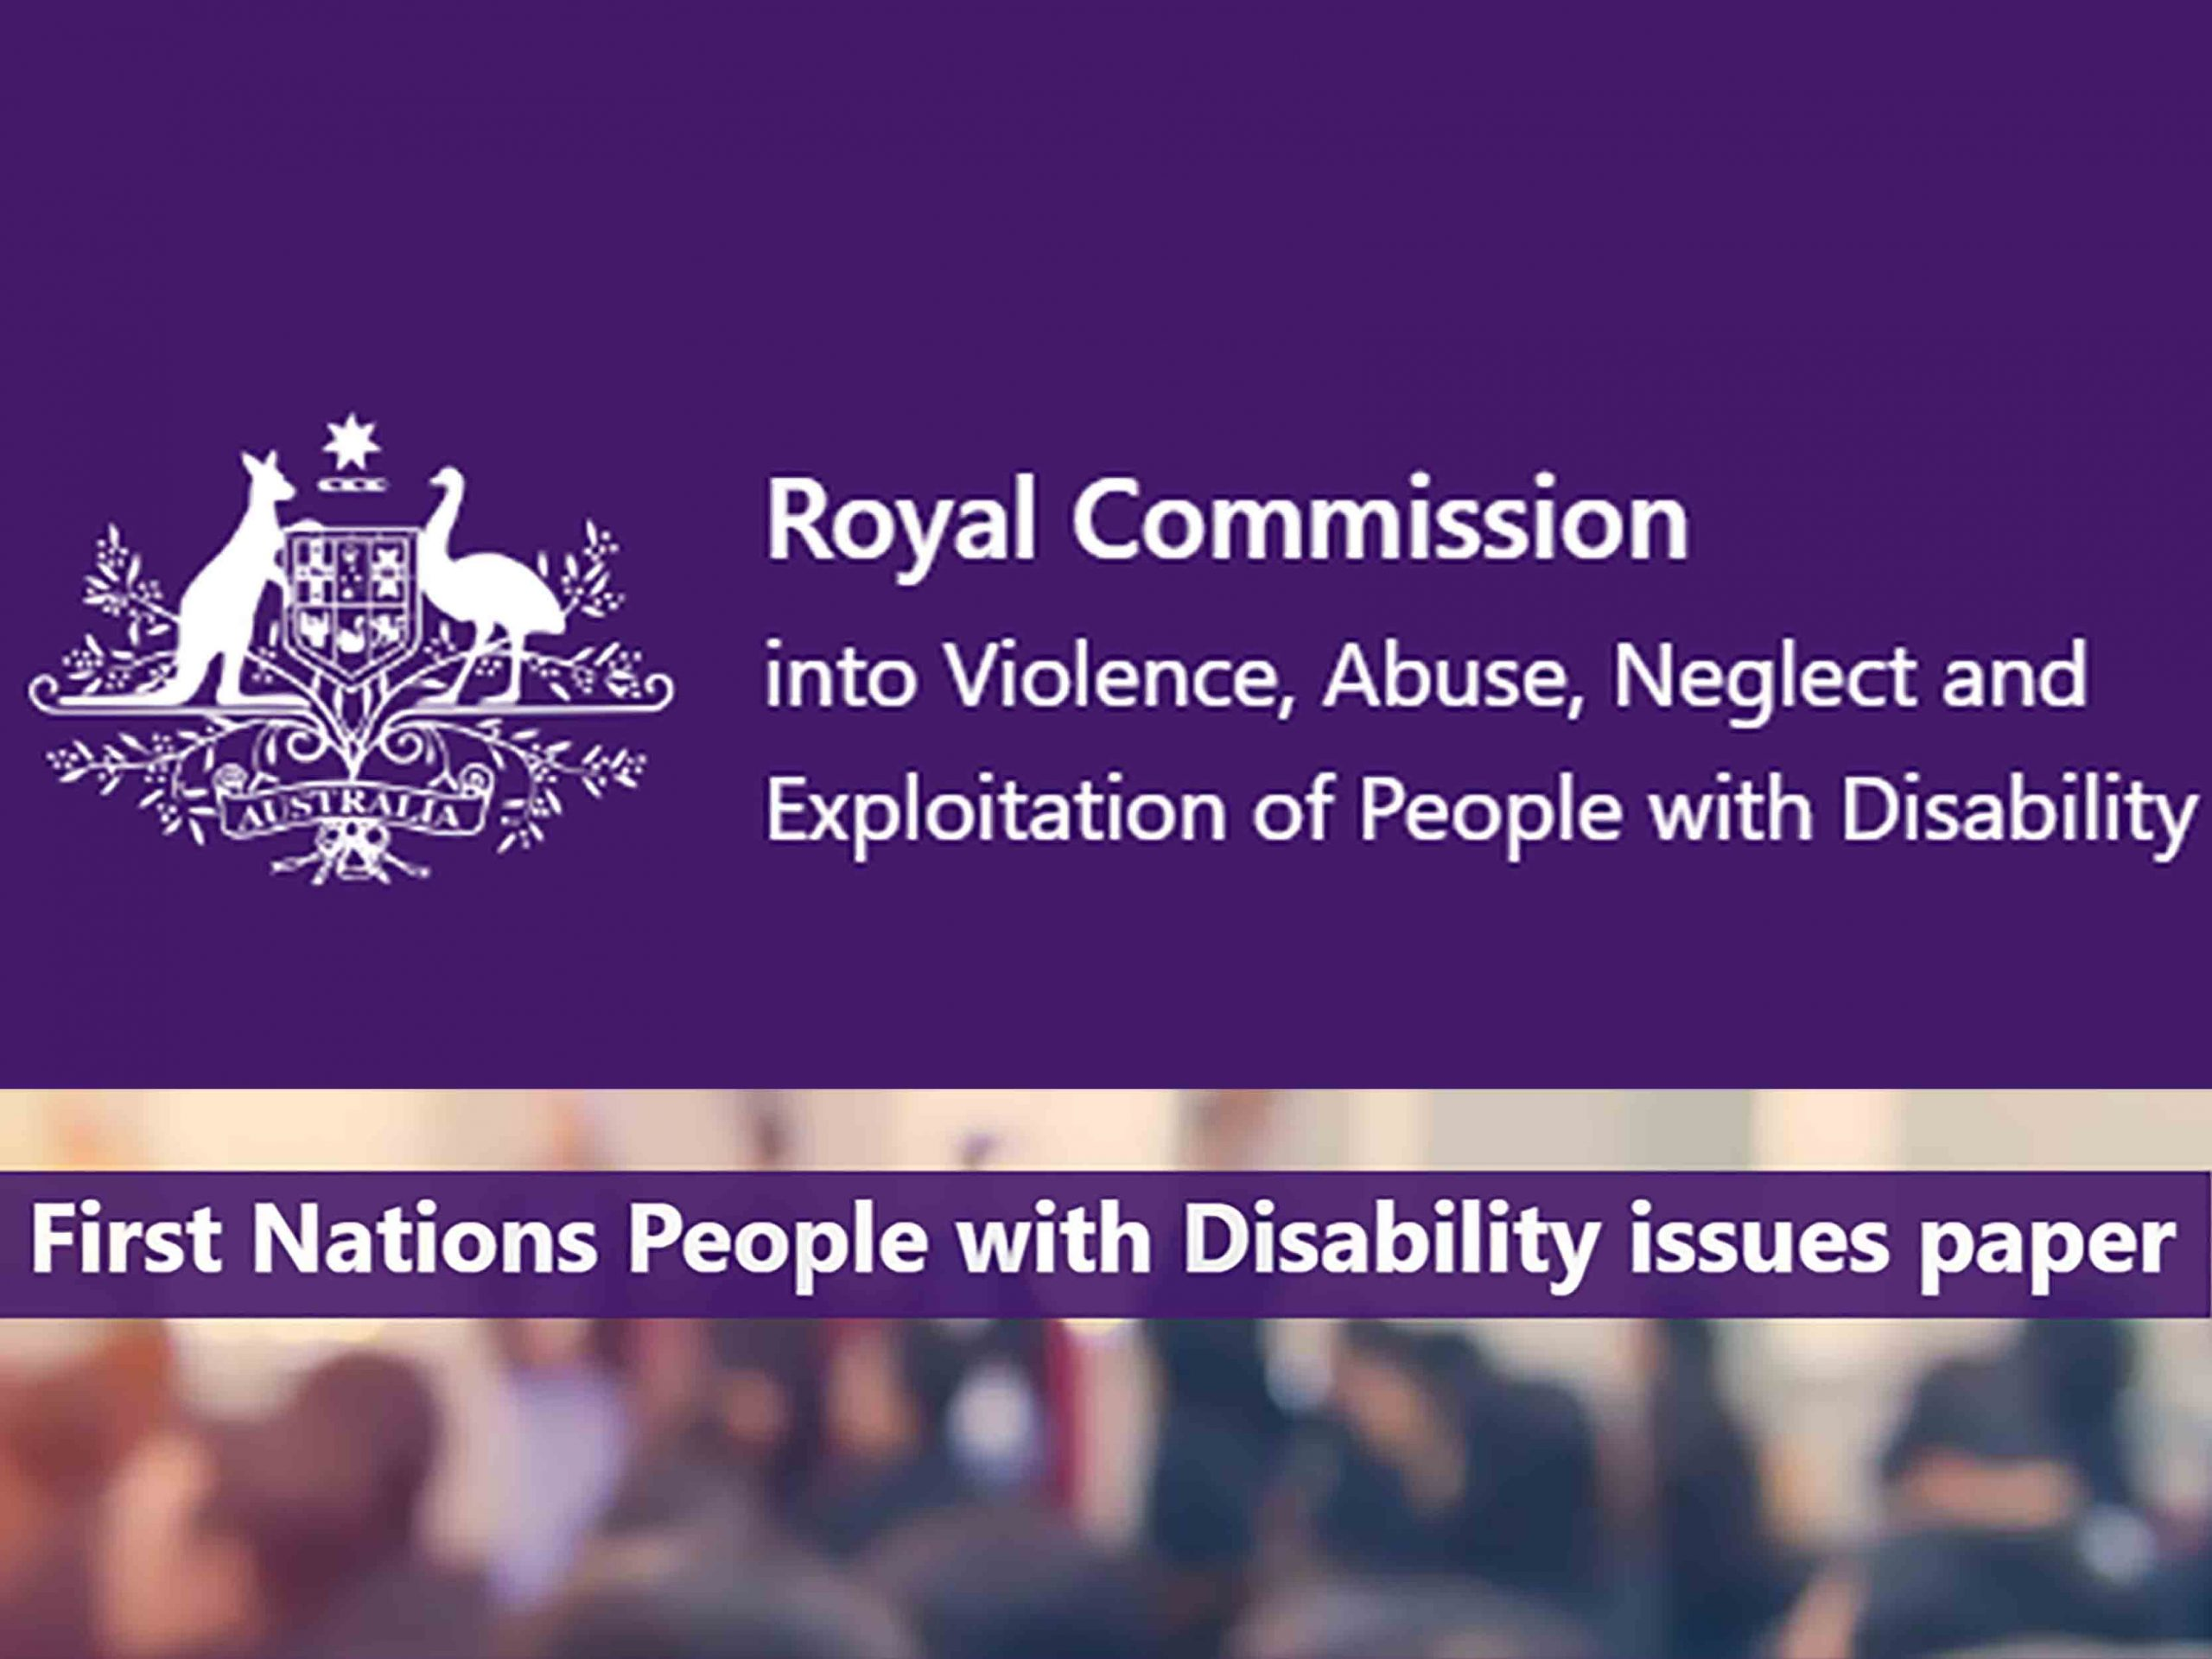 Image with purple background and Australian Federal Government Logo. Text reads Royal Commission into Violence Abuse Neglect and Exploitation of People with Disability. Second part of image is of a crowd of people with text reading First Nations People With Disability issues paper.